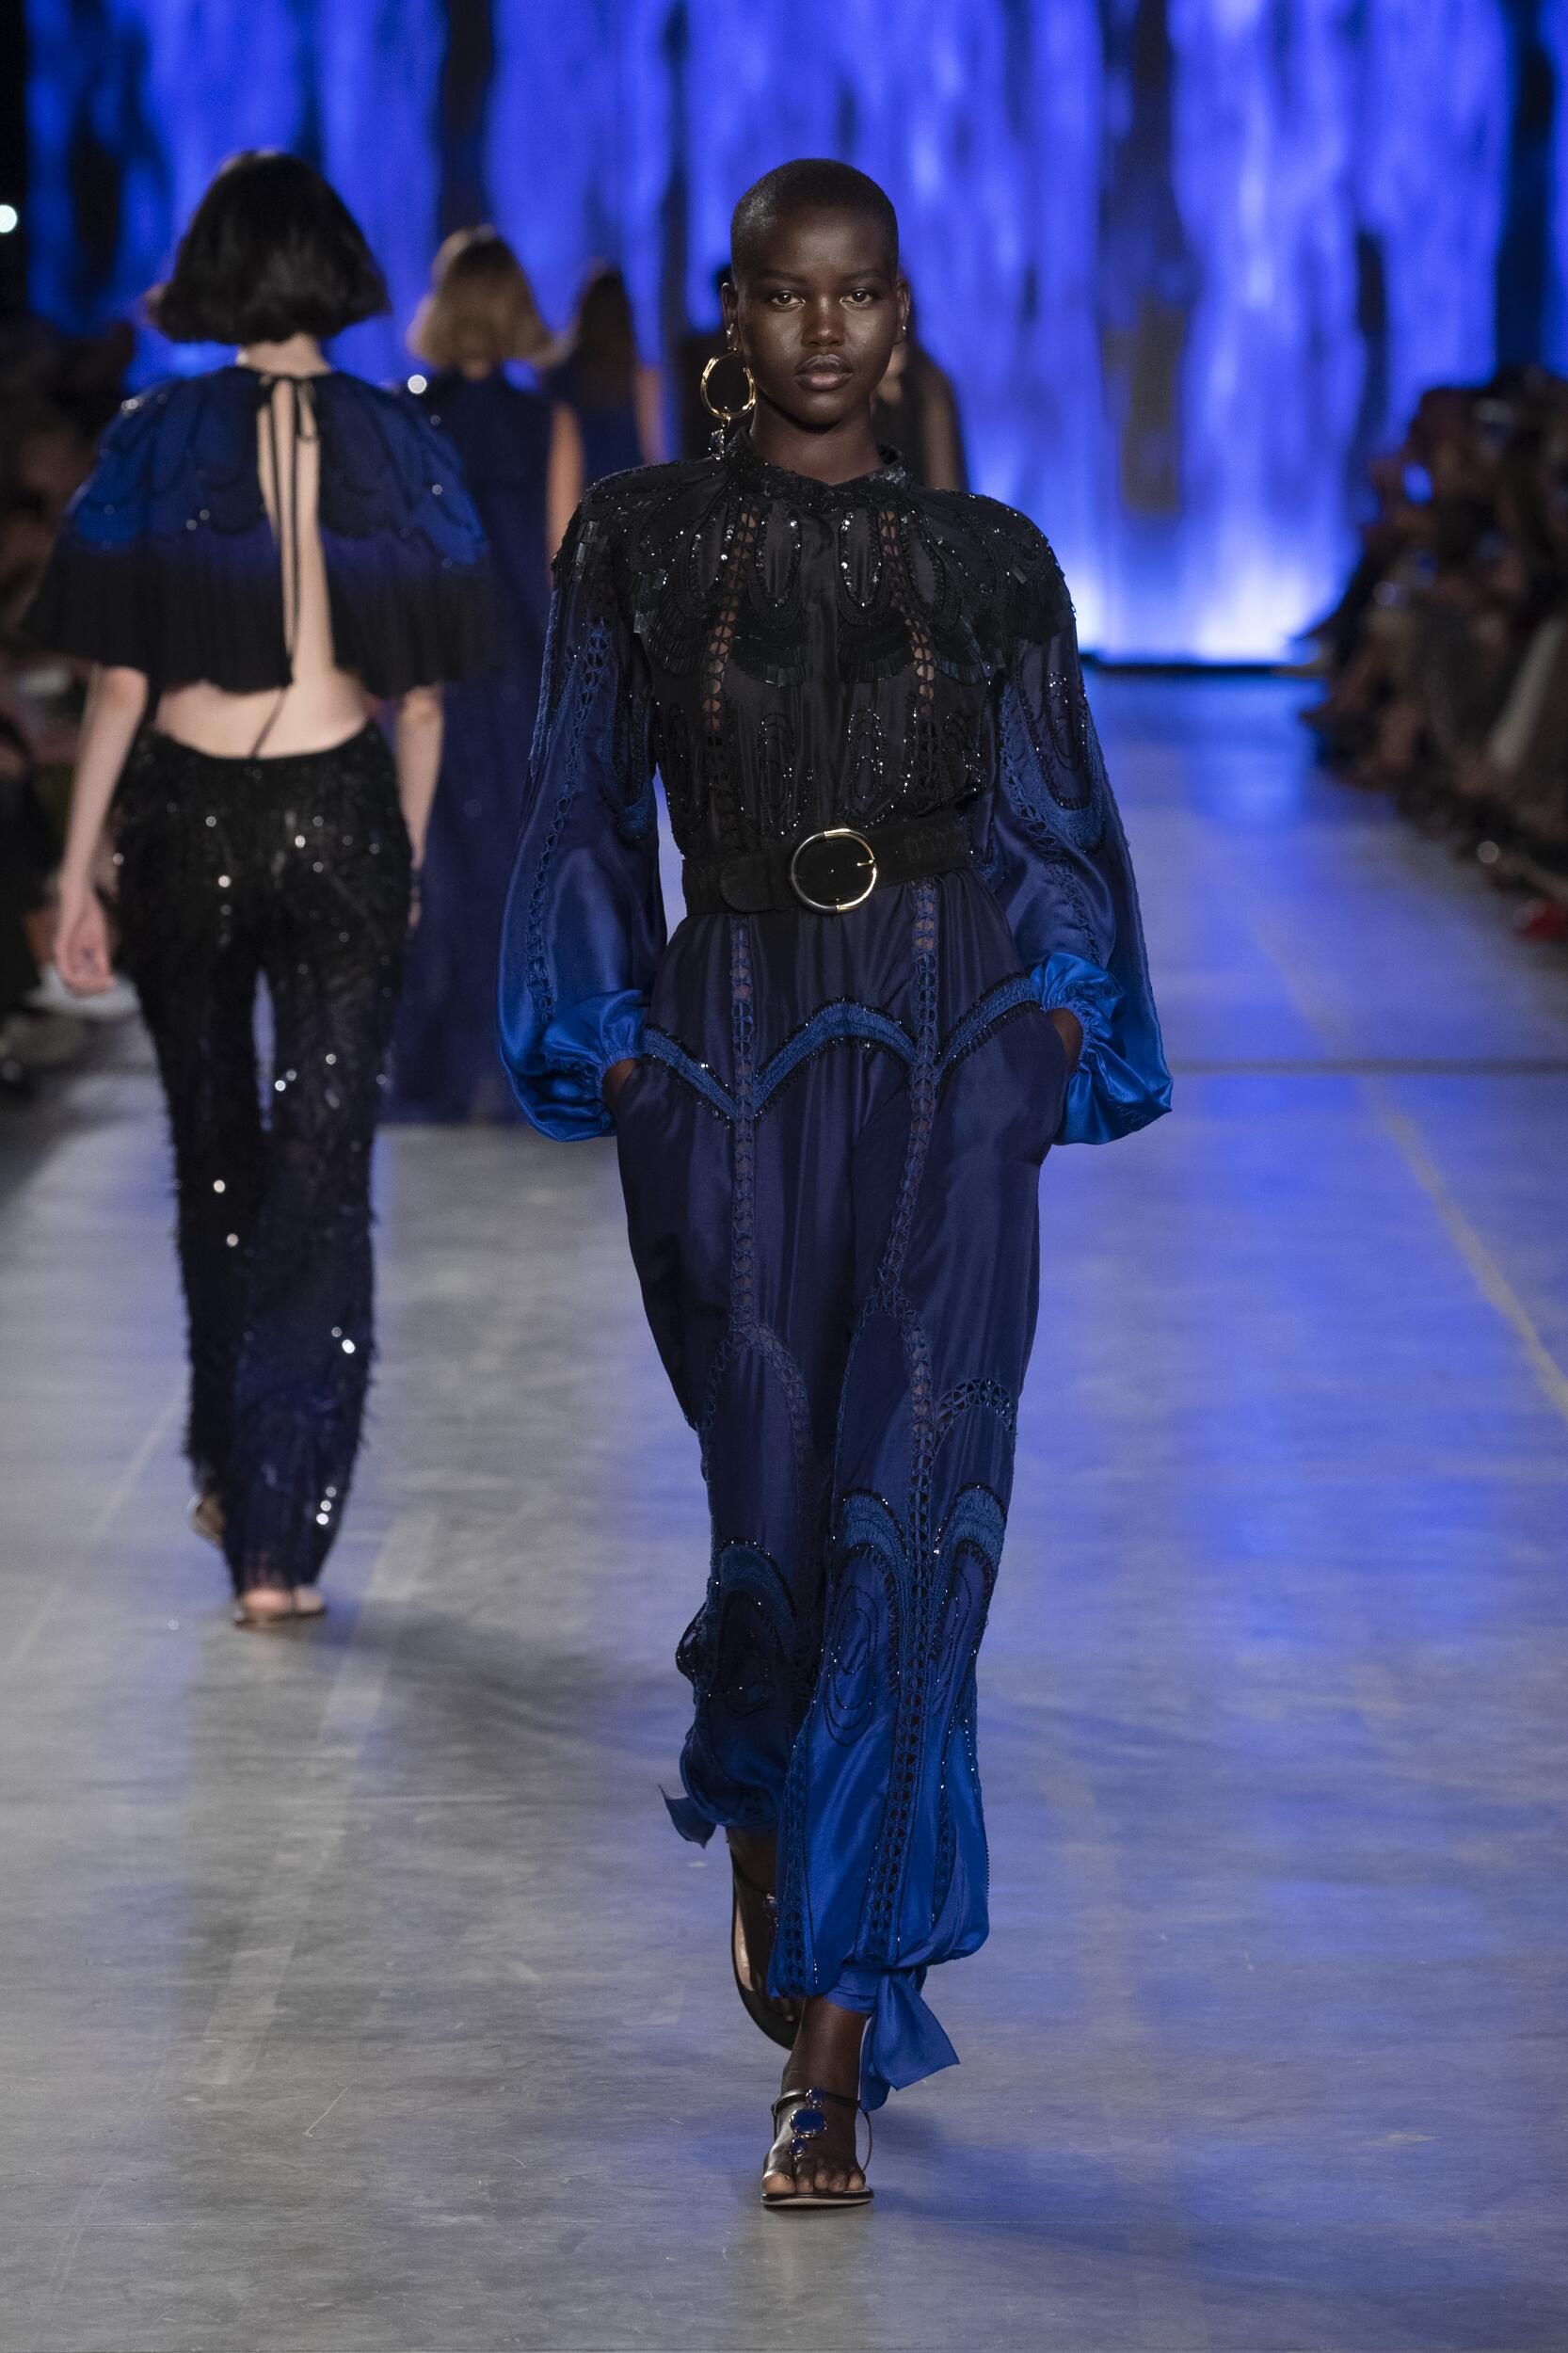 Fashion Week 2020 Catwalk Alberta Ferretti